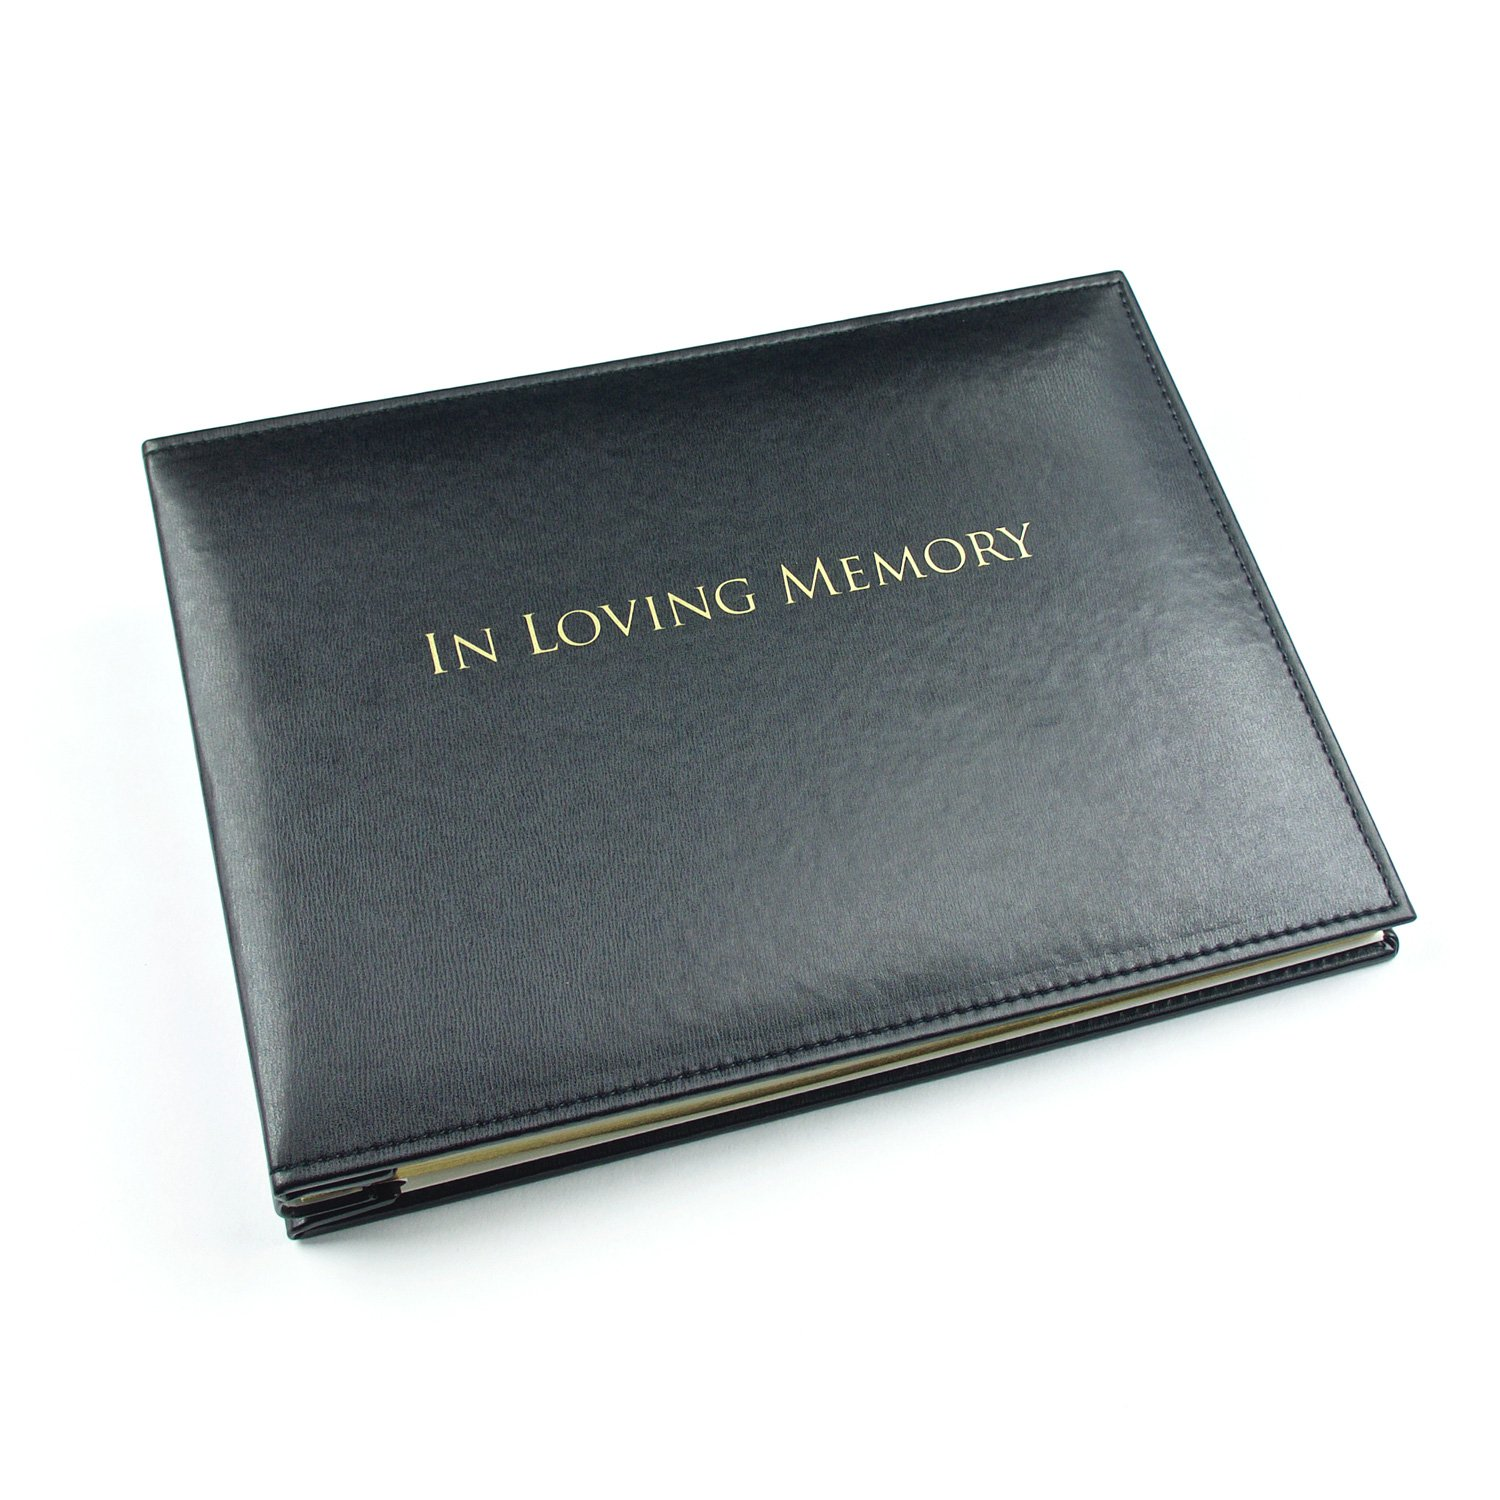 Esposti In Loving Memory Book - Condolence Book - Funeral Guest Book - Loose Leaf - Black 10.5 x 7.6 x 1.2inches by Esposti